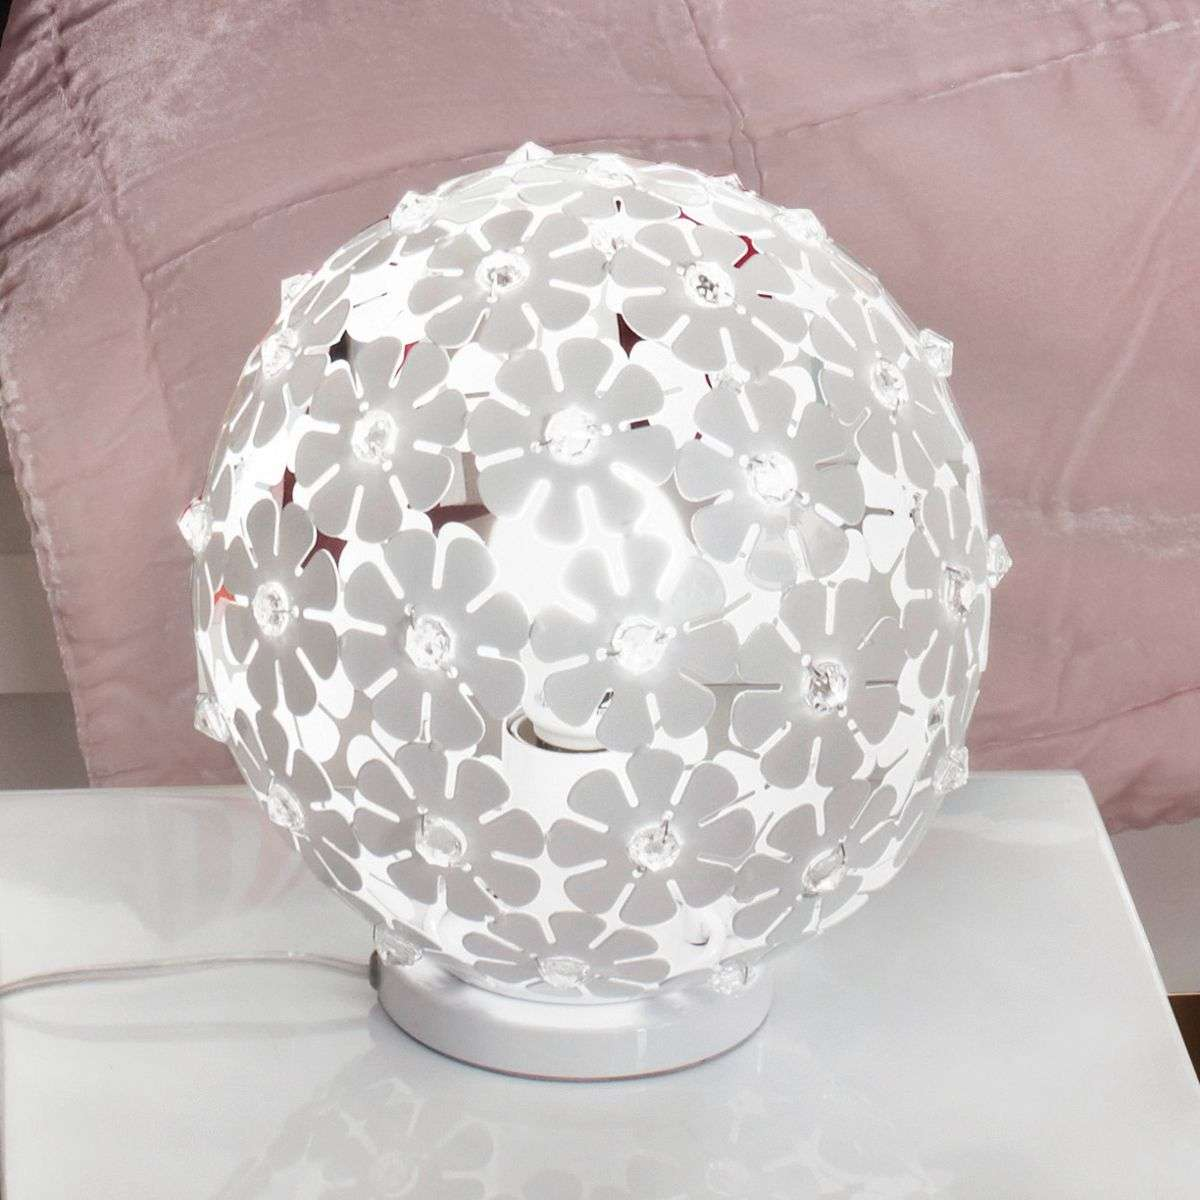 Spherical hanifa metal table lamp with flowers lights spherical hanifa metal table lamp with flowers 3031642 31 mozeypictures Choice Image